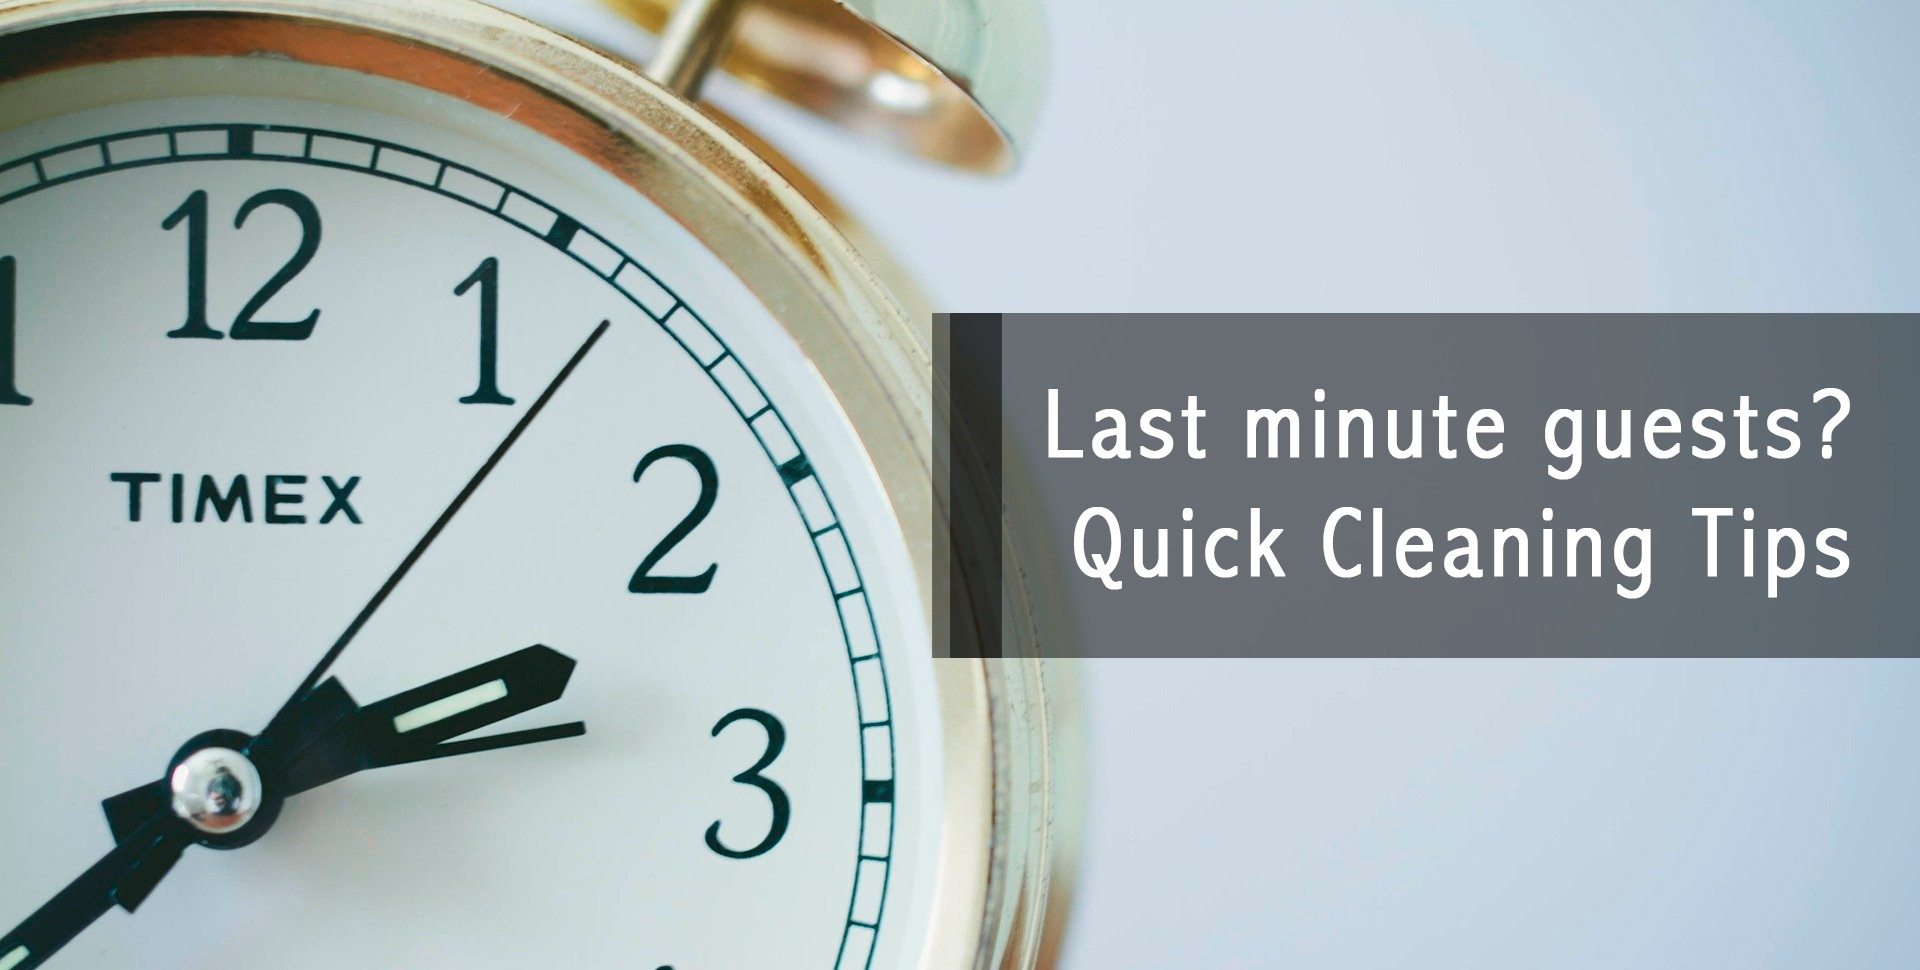 Last minute guests? Quick Cleaning Tips